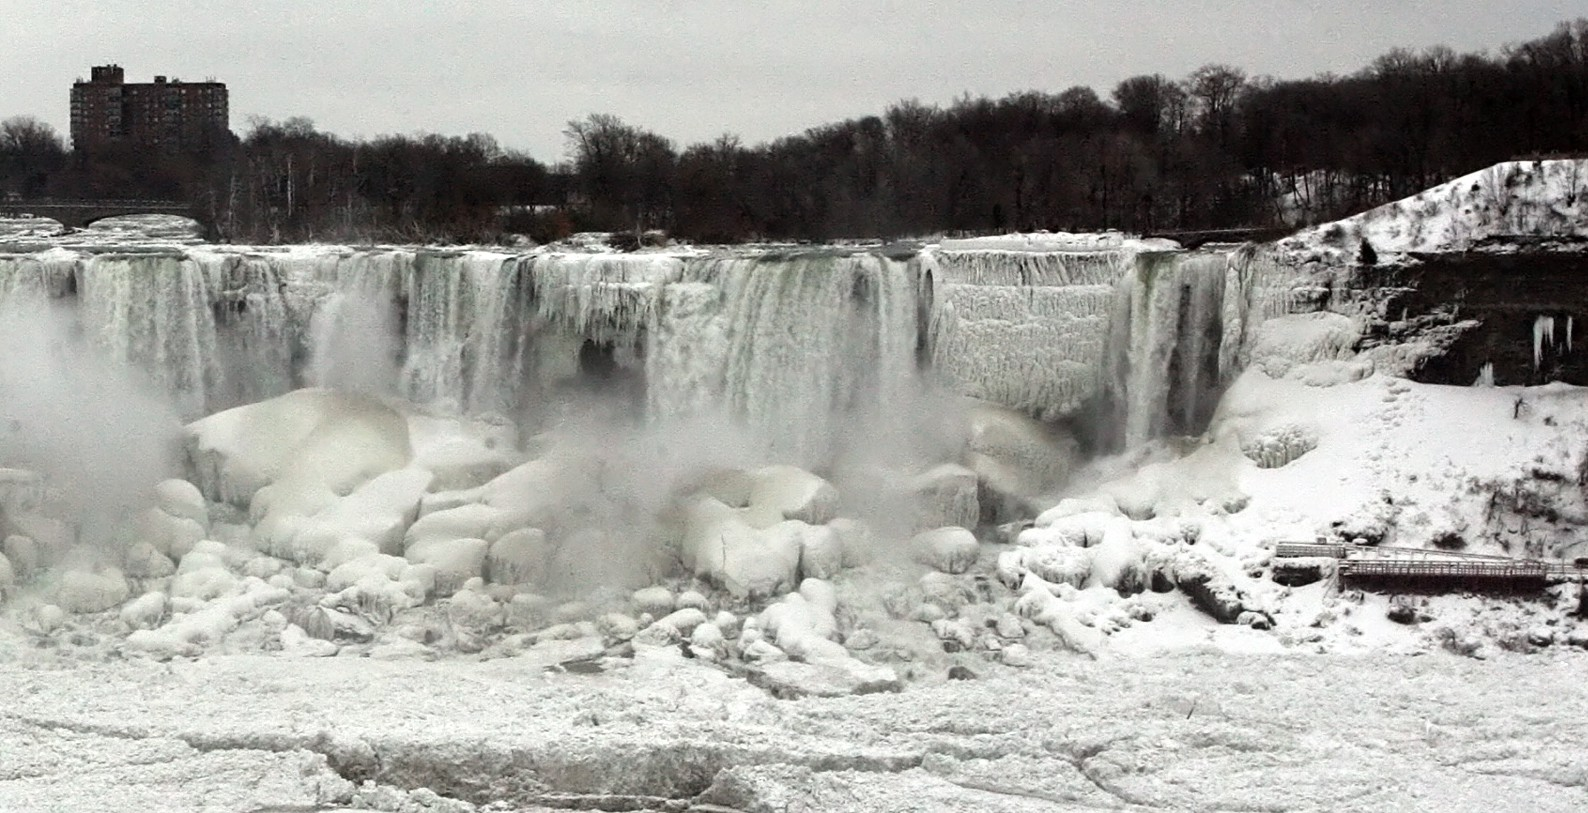 """In this Jan. 10, 2014 photo, the United States side of Niagara Falls in New York has begun to thaw after the recent """"polar vortex"""" that affected millions in the United Sates and Canada."""